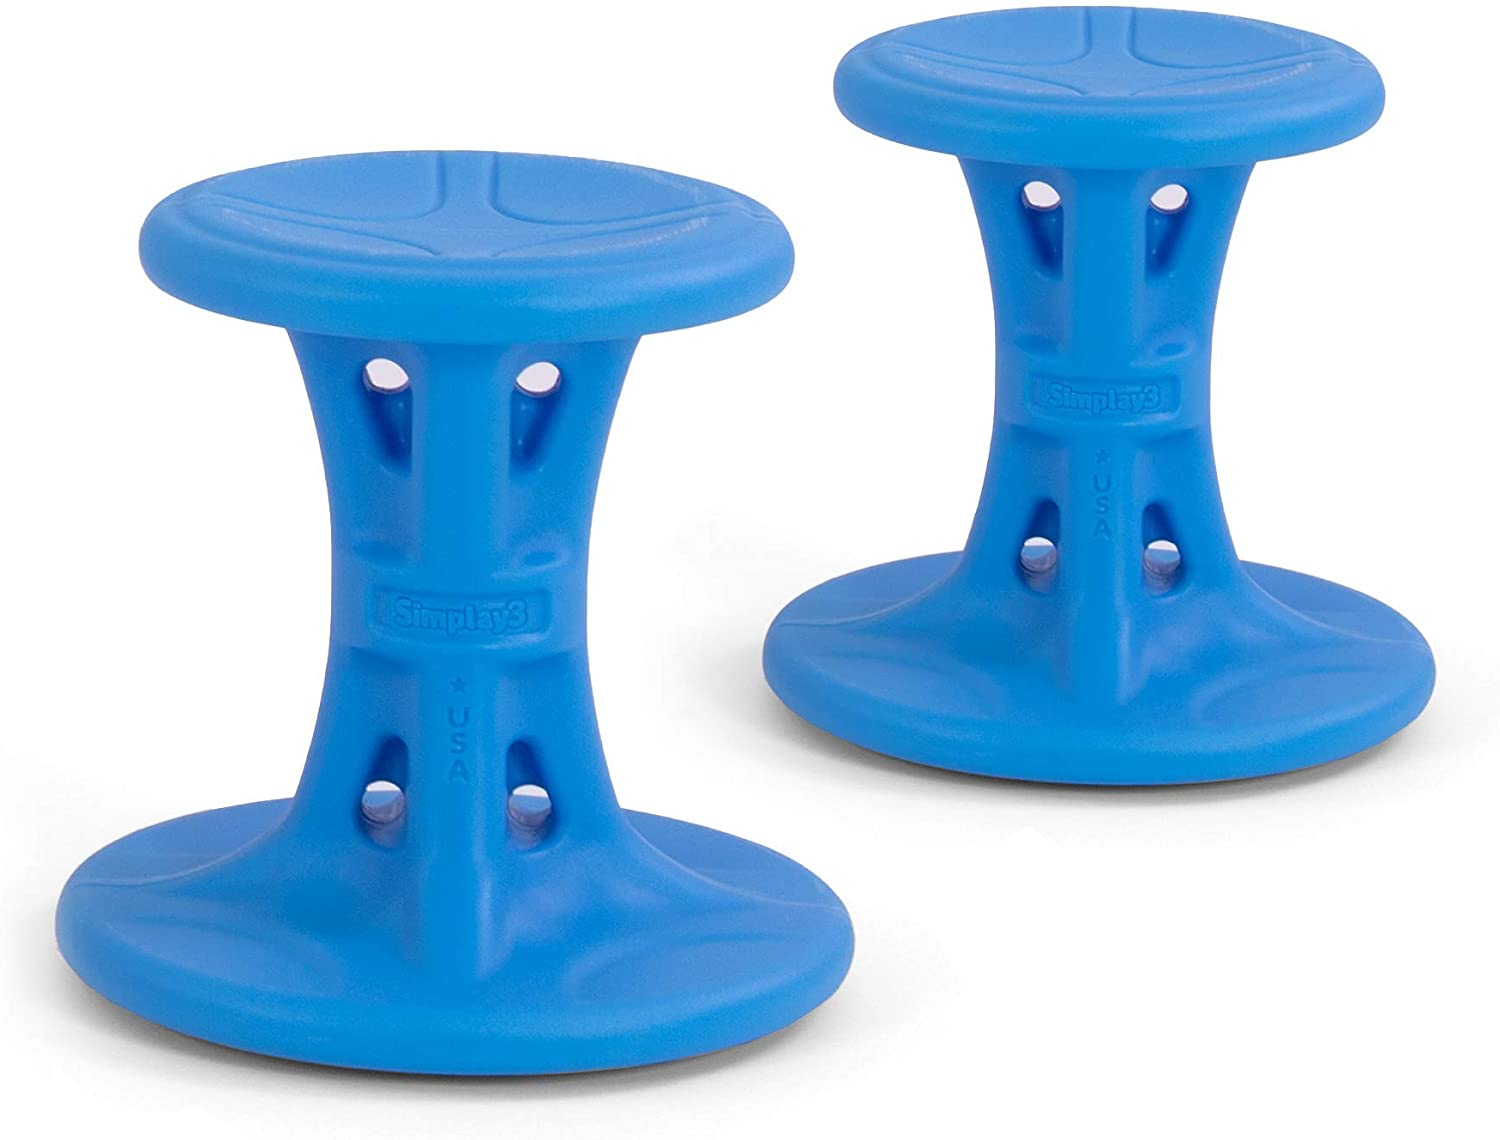 Simplay3 Wiggle/Wobble Kids Flexible Active Sitting Chair/Stools (2-Pack) to Improve Focus, Posture, Strengthen Core - Ages (5-8) 14 inch Blue - Made in USA, Ergonomic Design